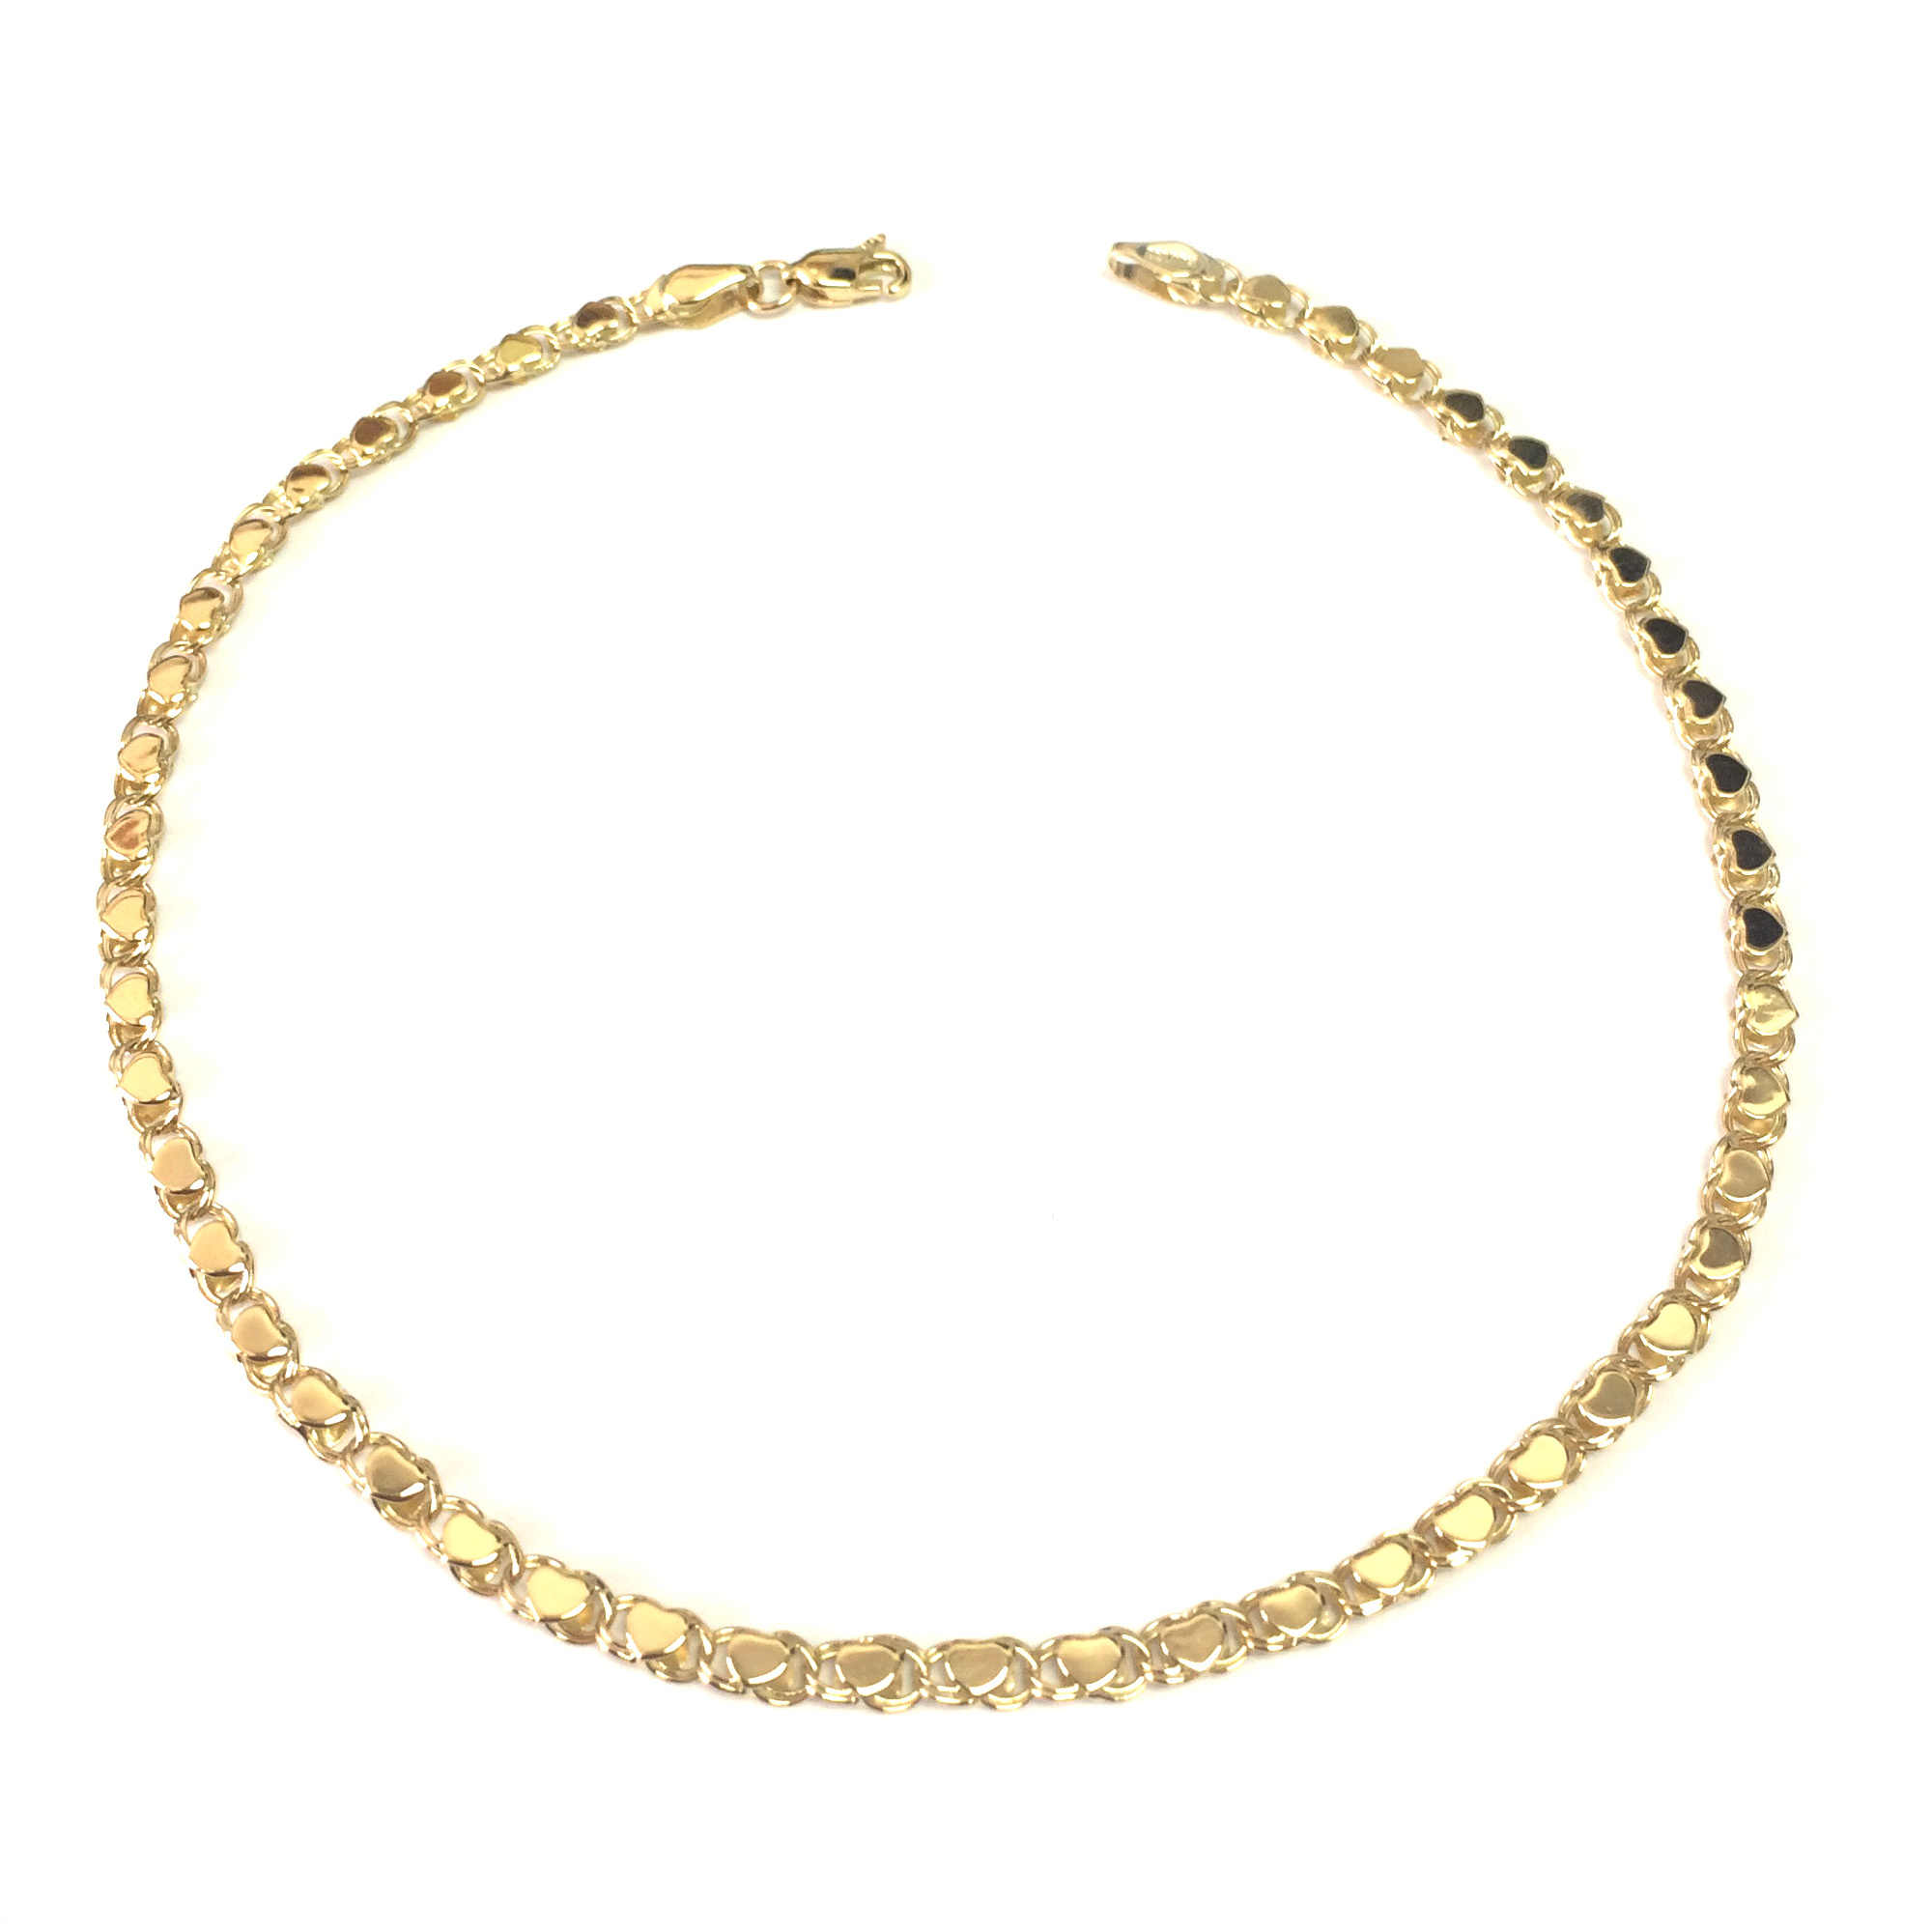 14K Yellow Gold Diamond Cut Hearts Chain Anklet, 10″